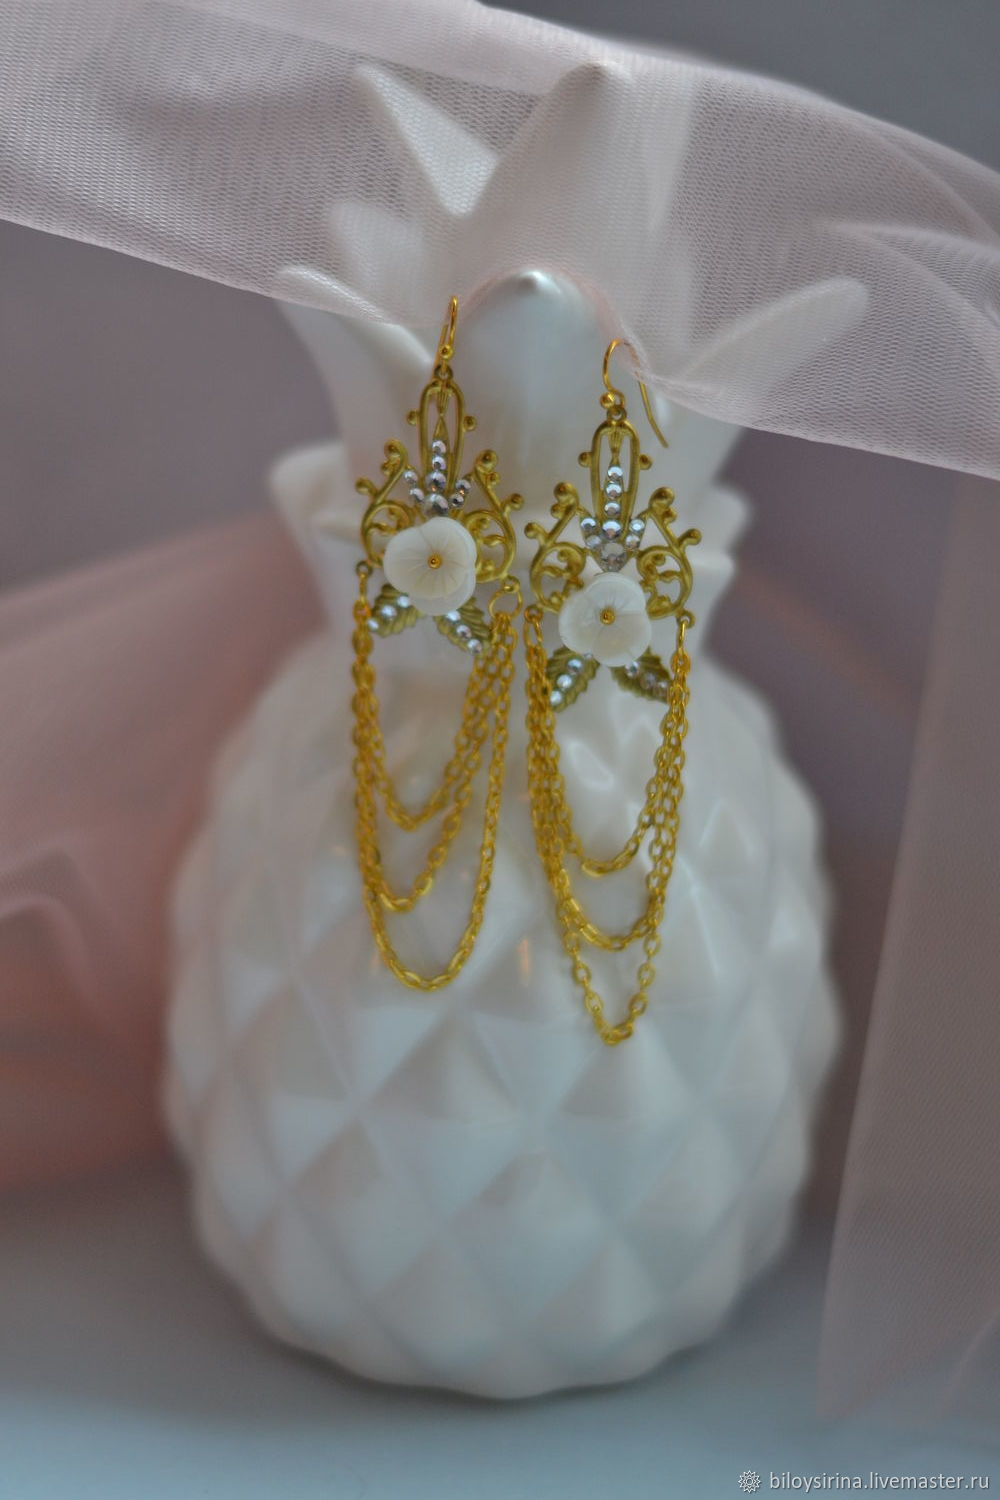 Earrings with mother of pearl and pearls, Earrings, St. Petersburg,  Фото №1